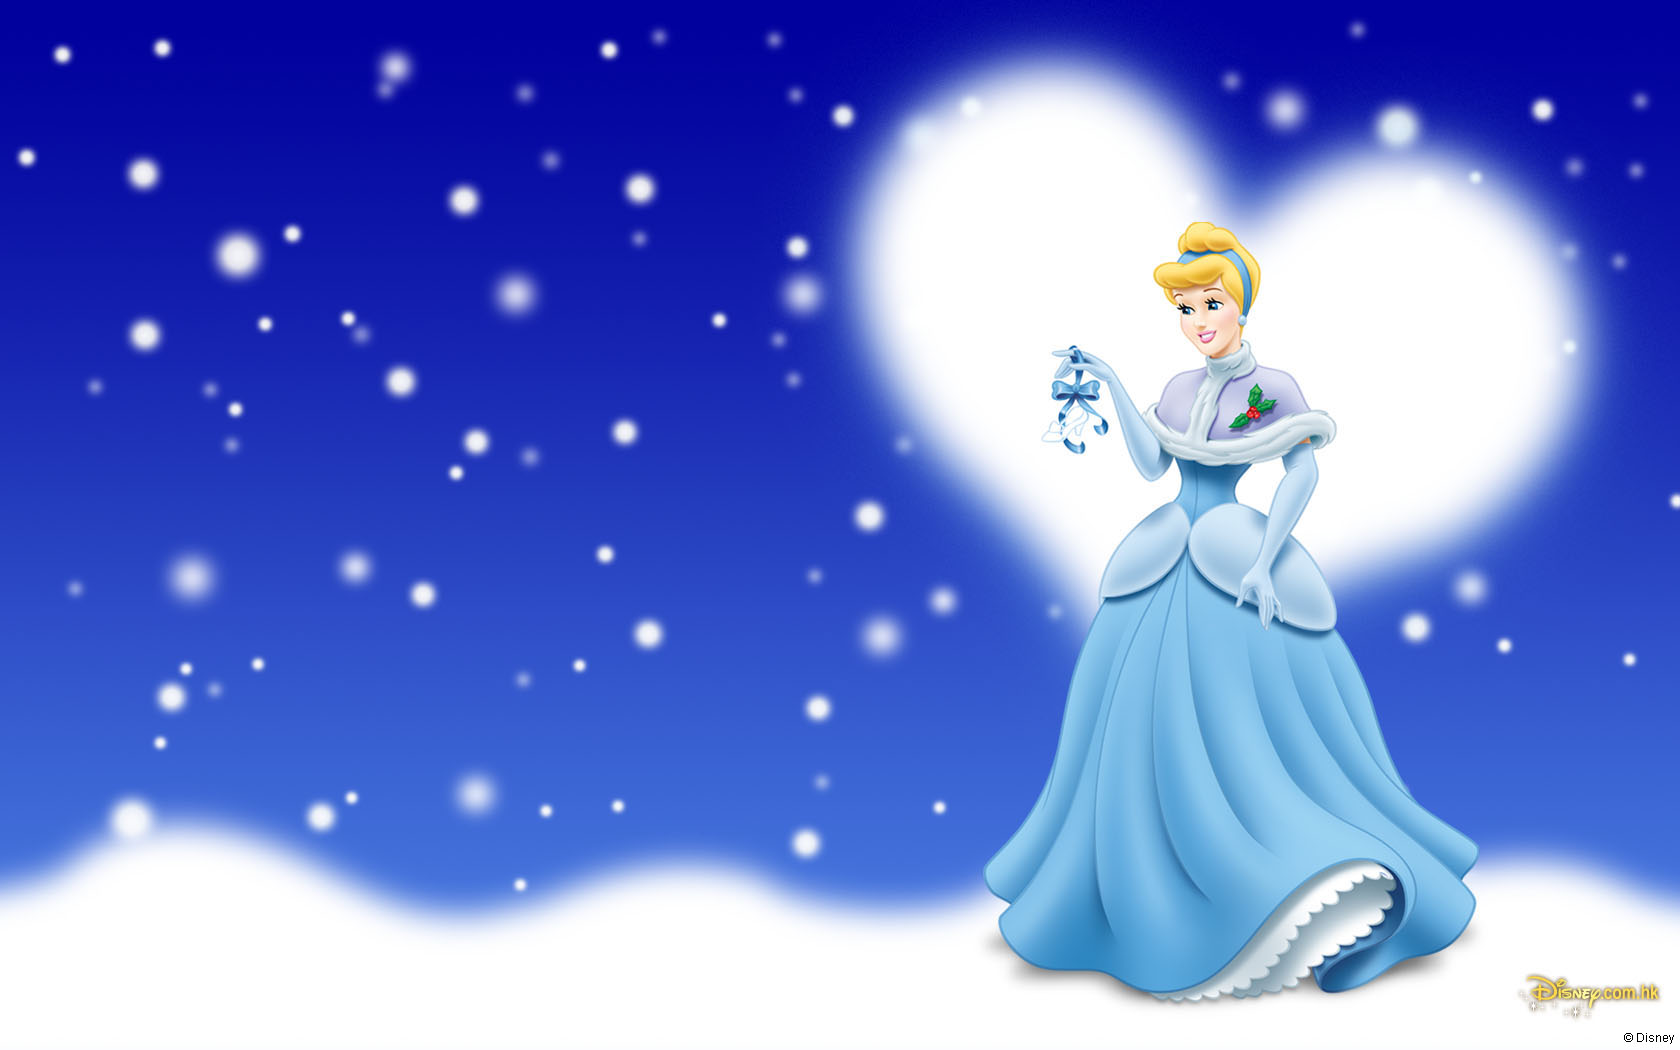 Disney Princess Wallpaper Desktop 1919850 Hd Wallpaper